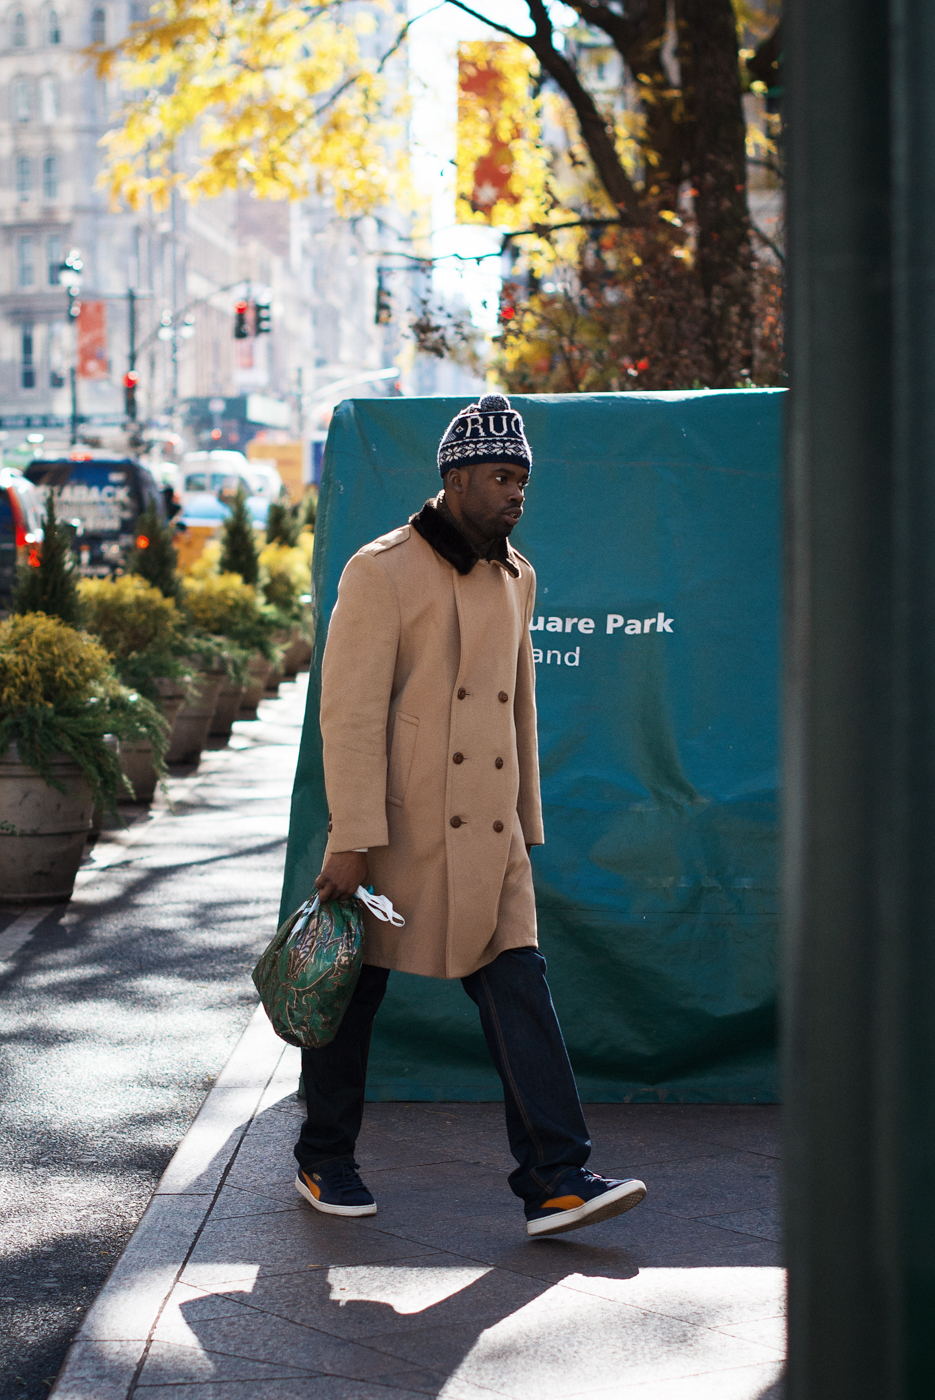 Winter coats are out in NYC.